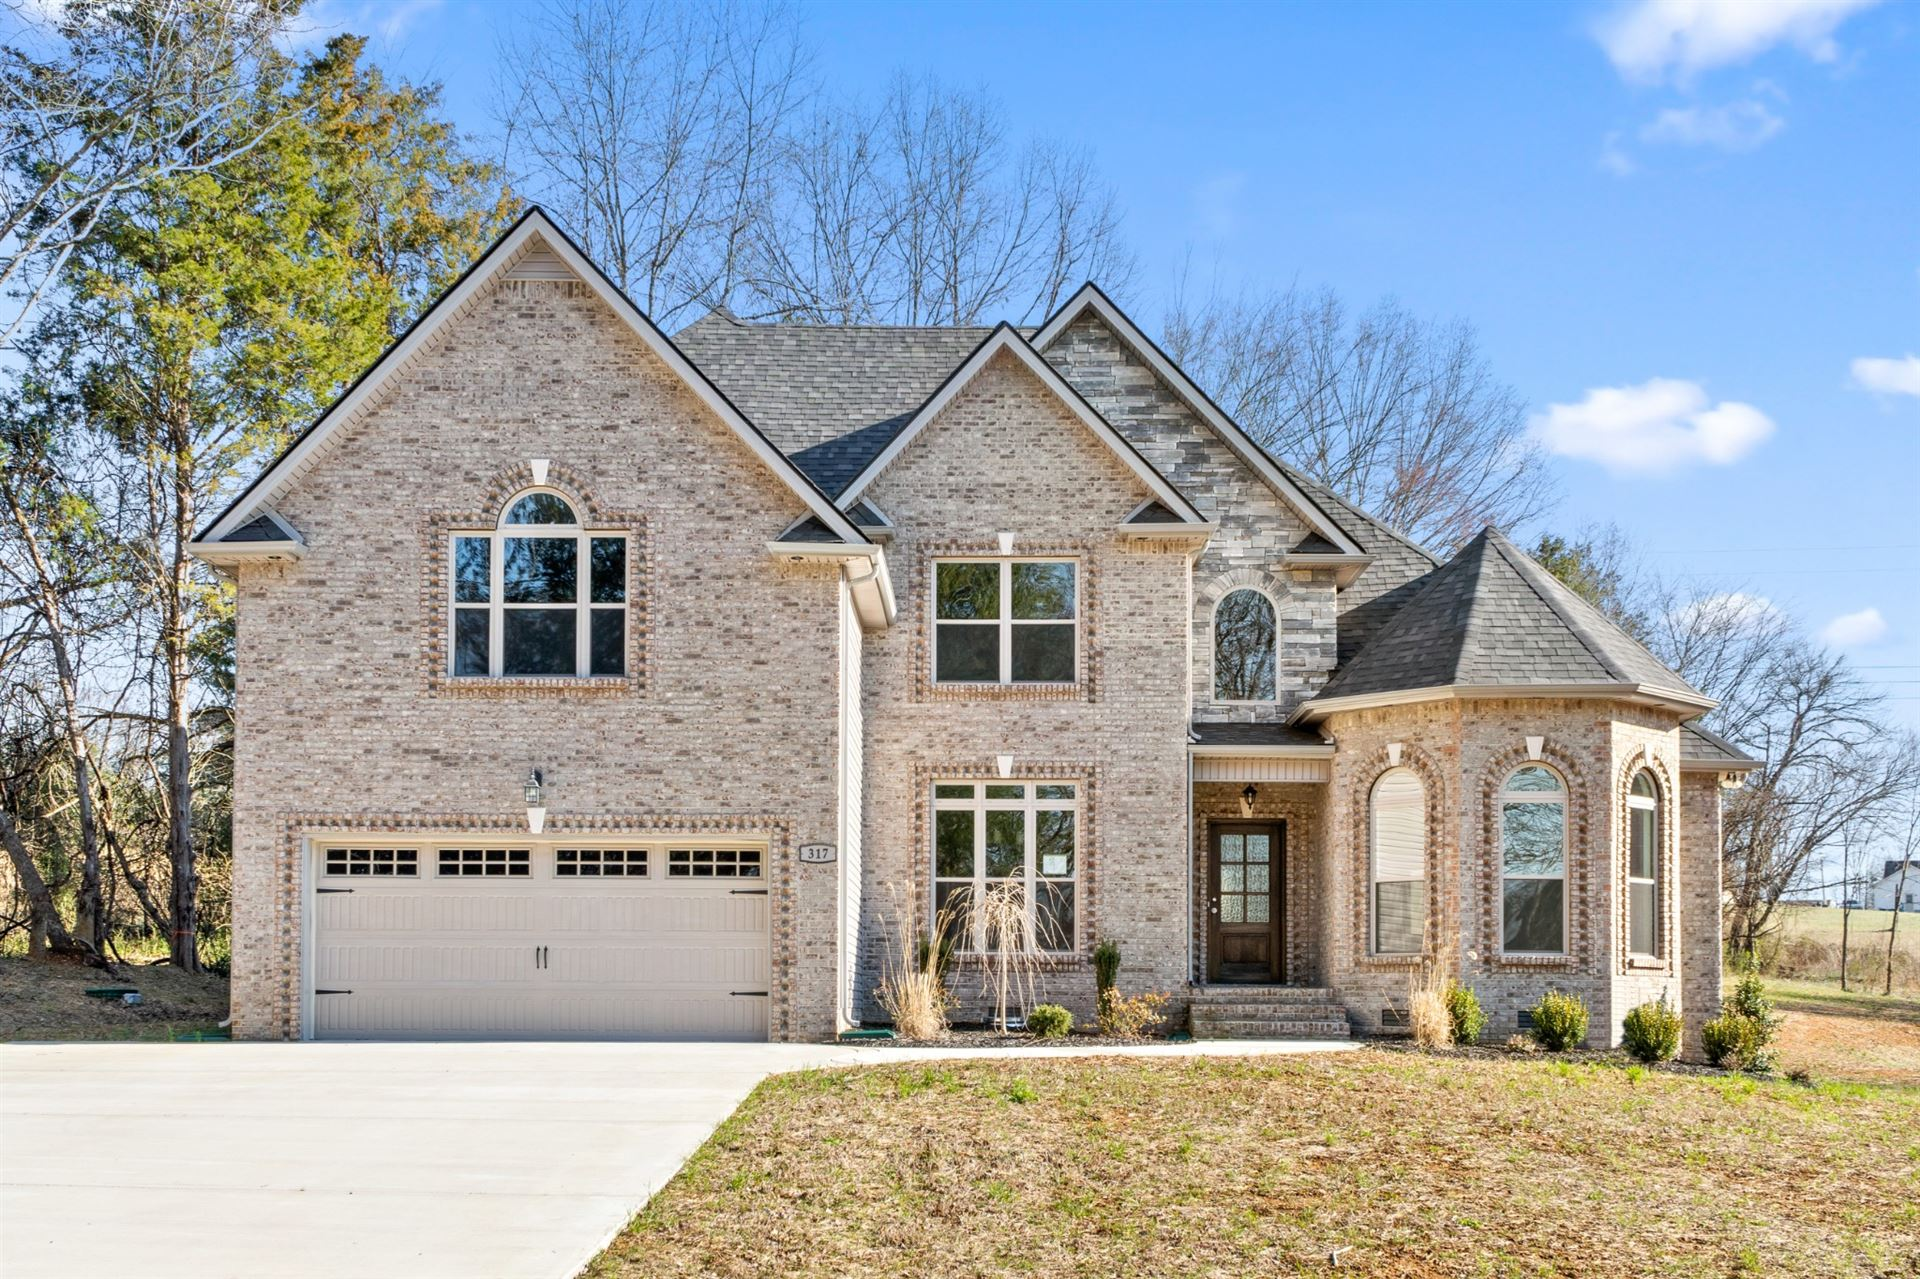 2 Wellington fields, Clarksville, TN 37043 - MLS#: 2190988